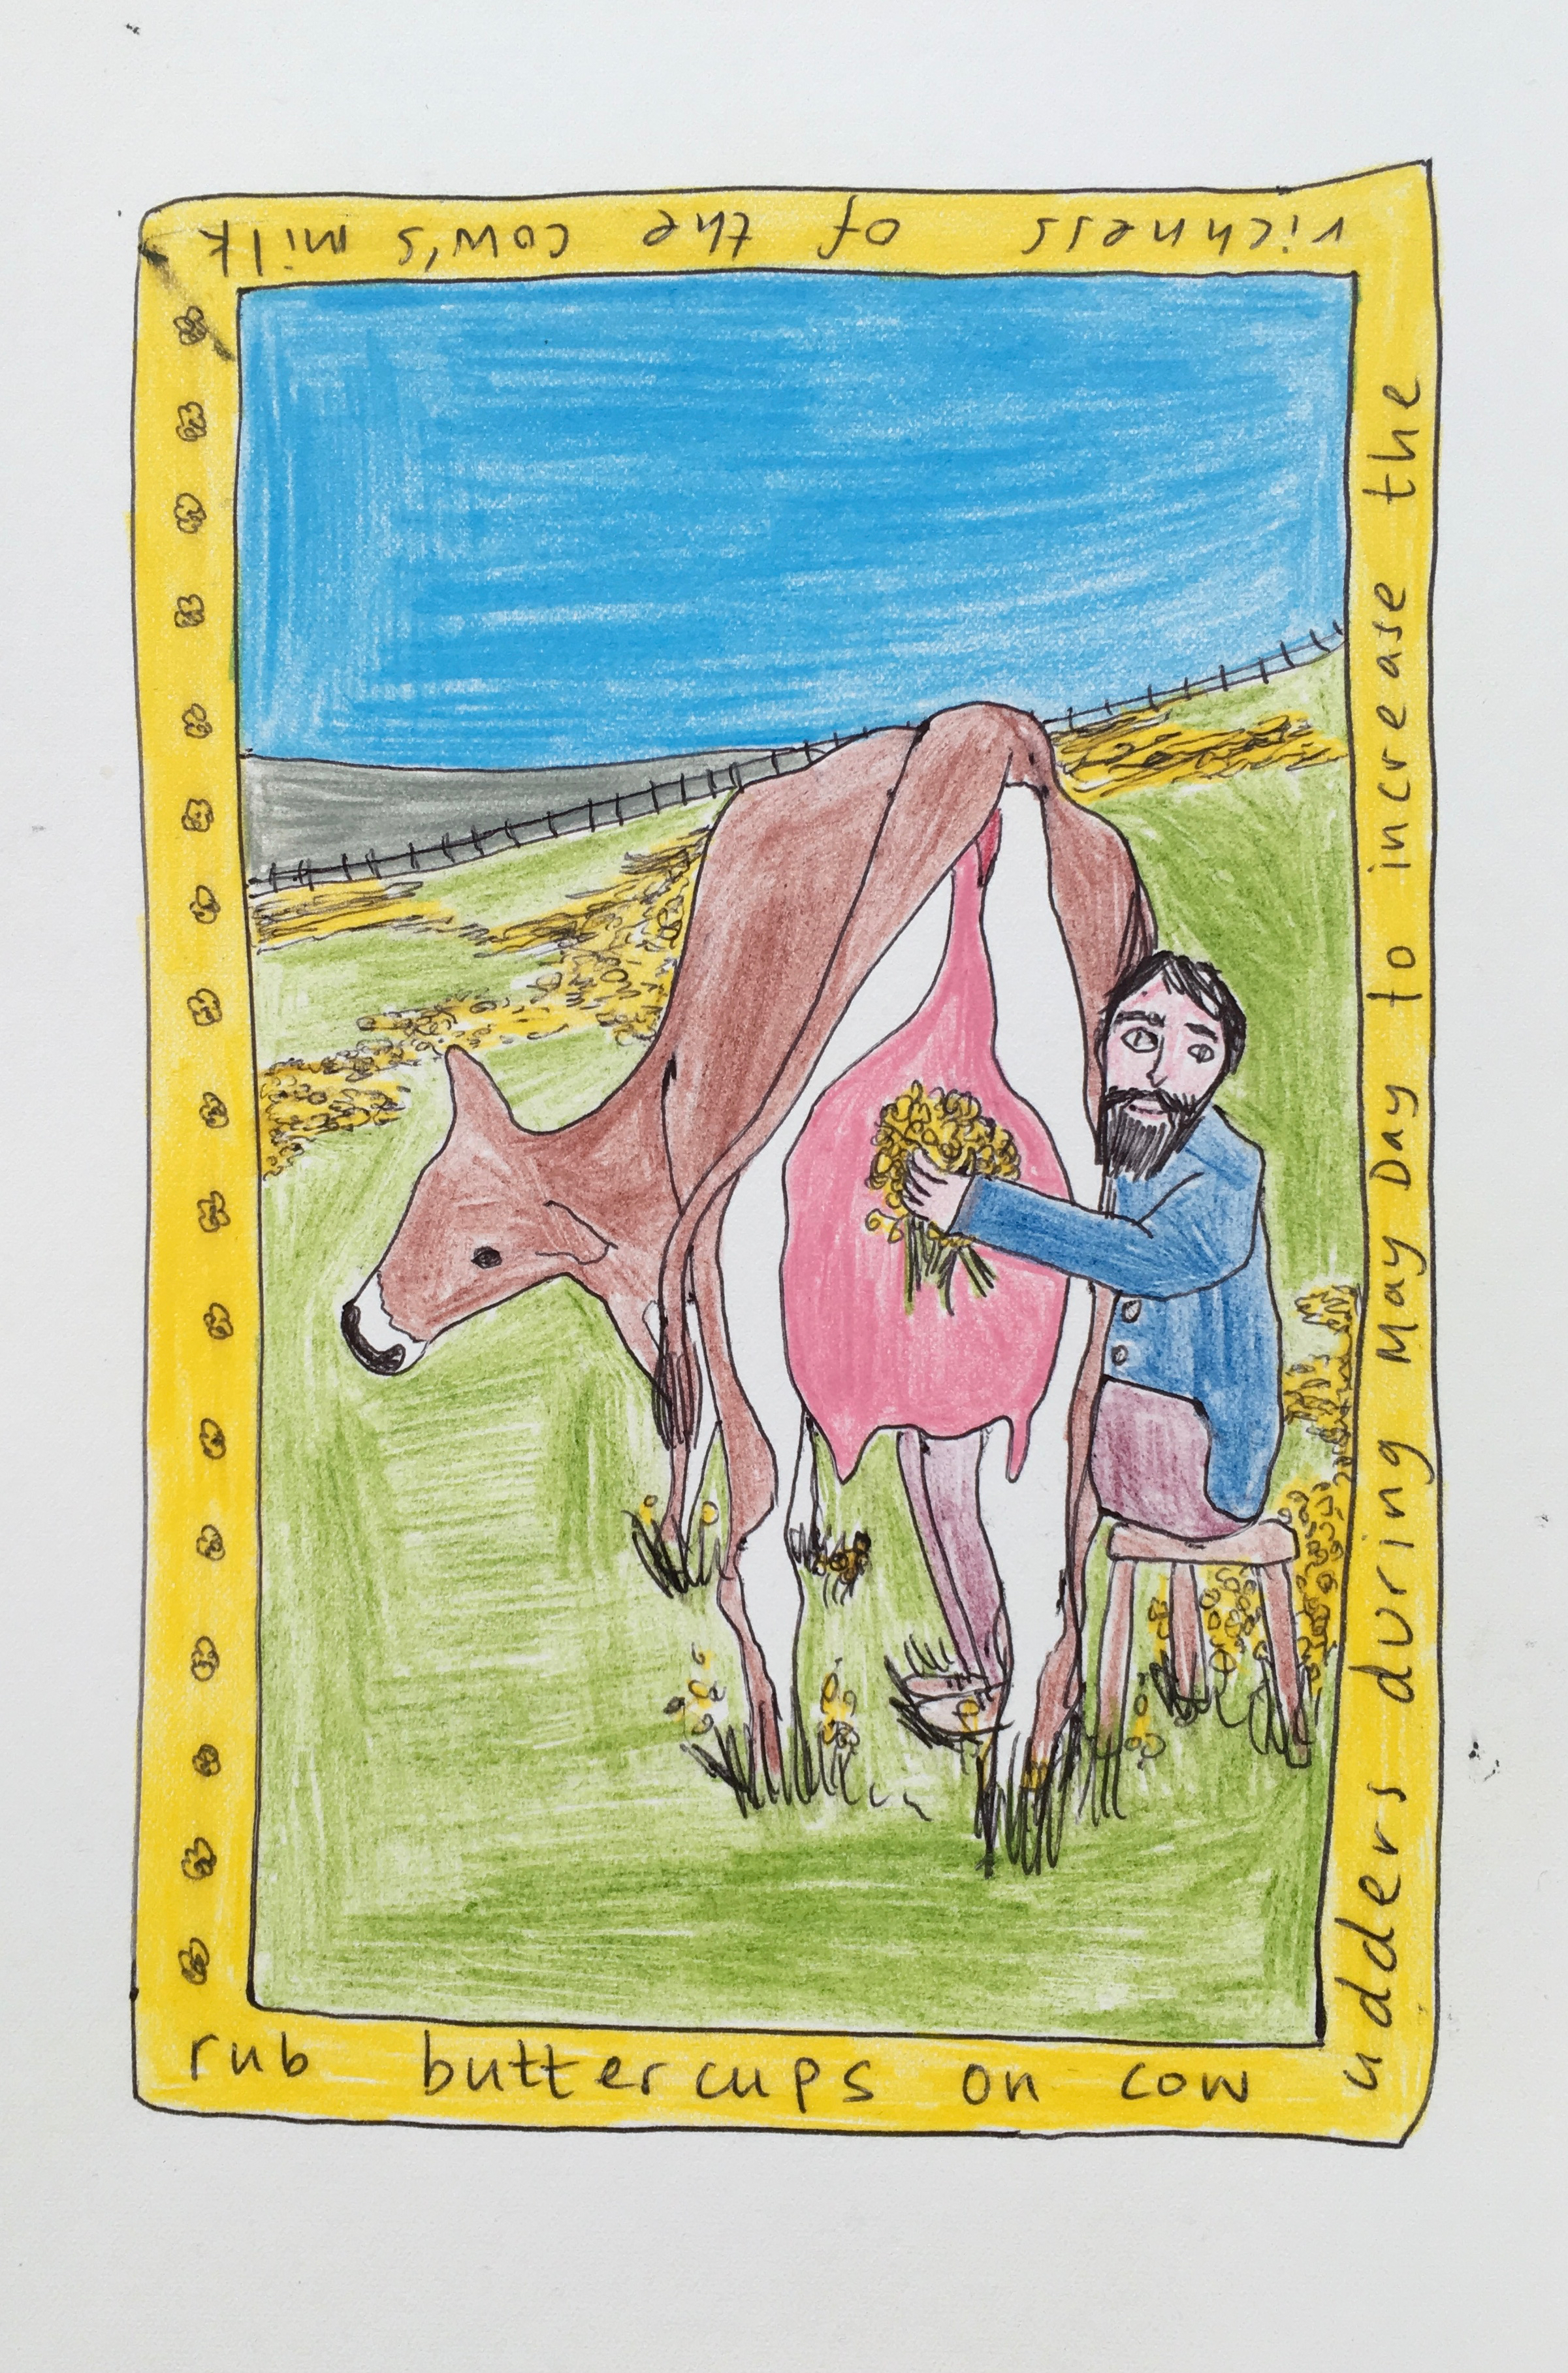 Rub buttercups on cow udders during May Day to increase the richness of the cow's milk,Plant Tales Series (Prints available).